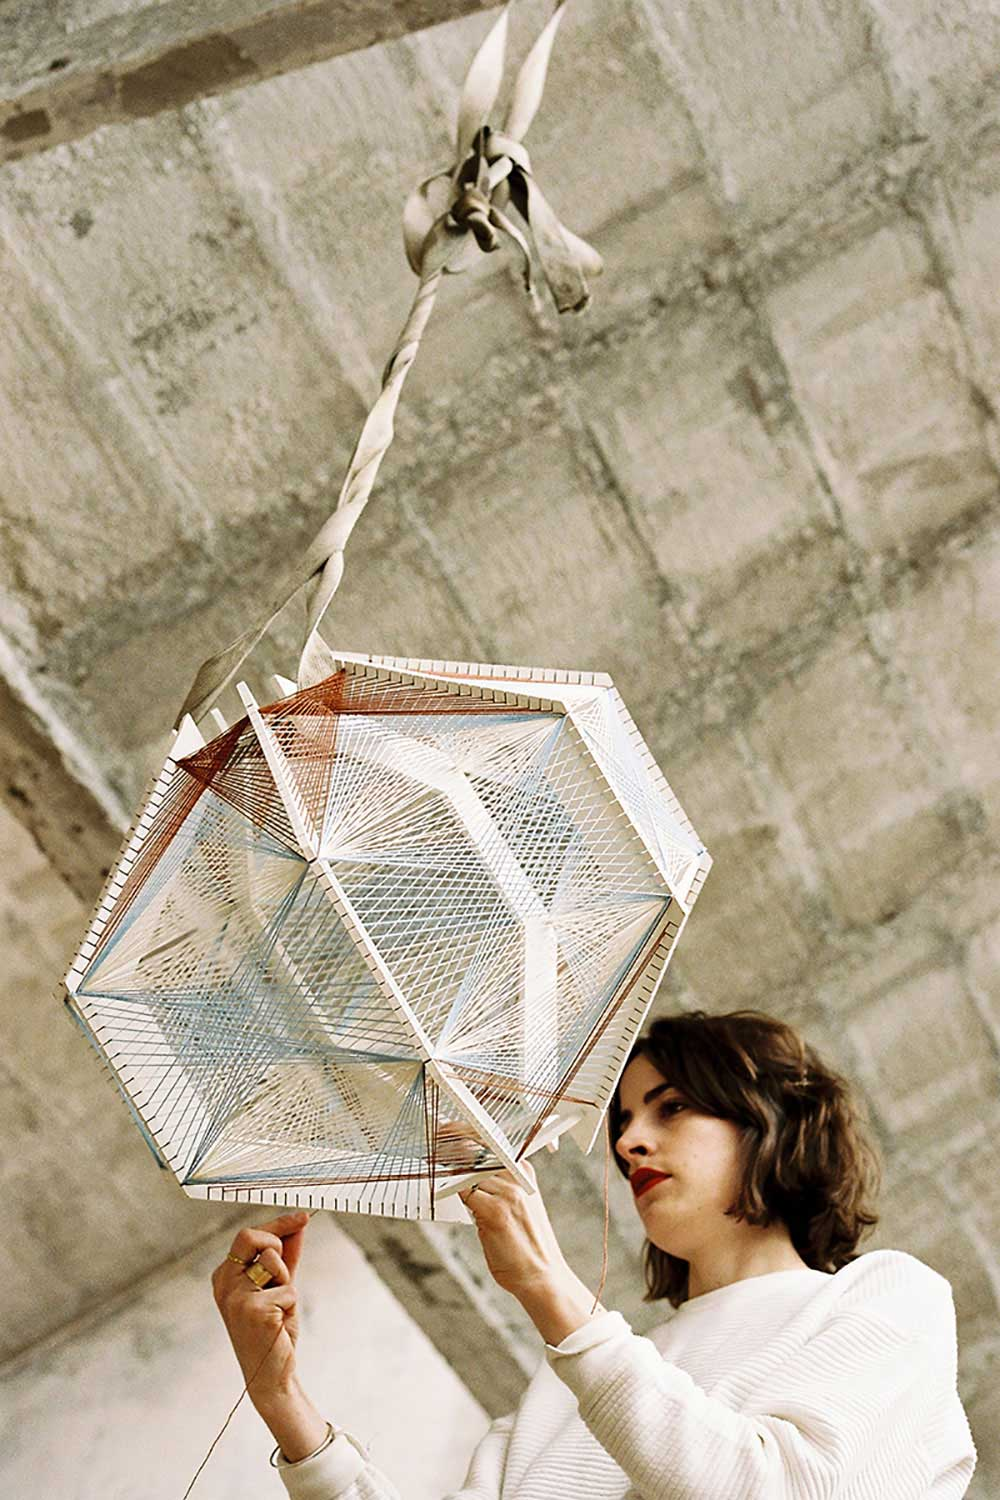 Julie-Lansom-Sputnik-Lamp-Yellowtrace-02